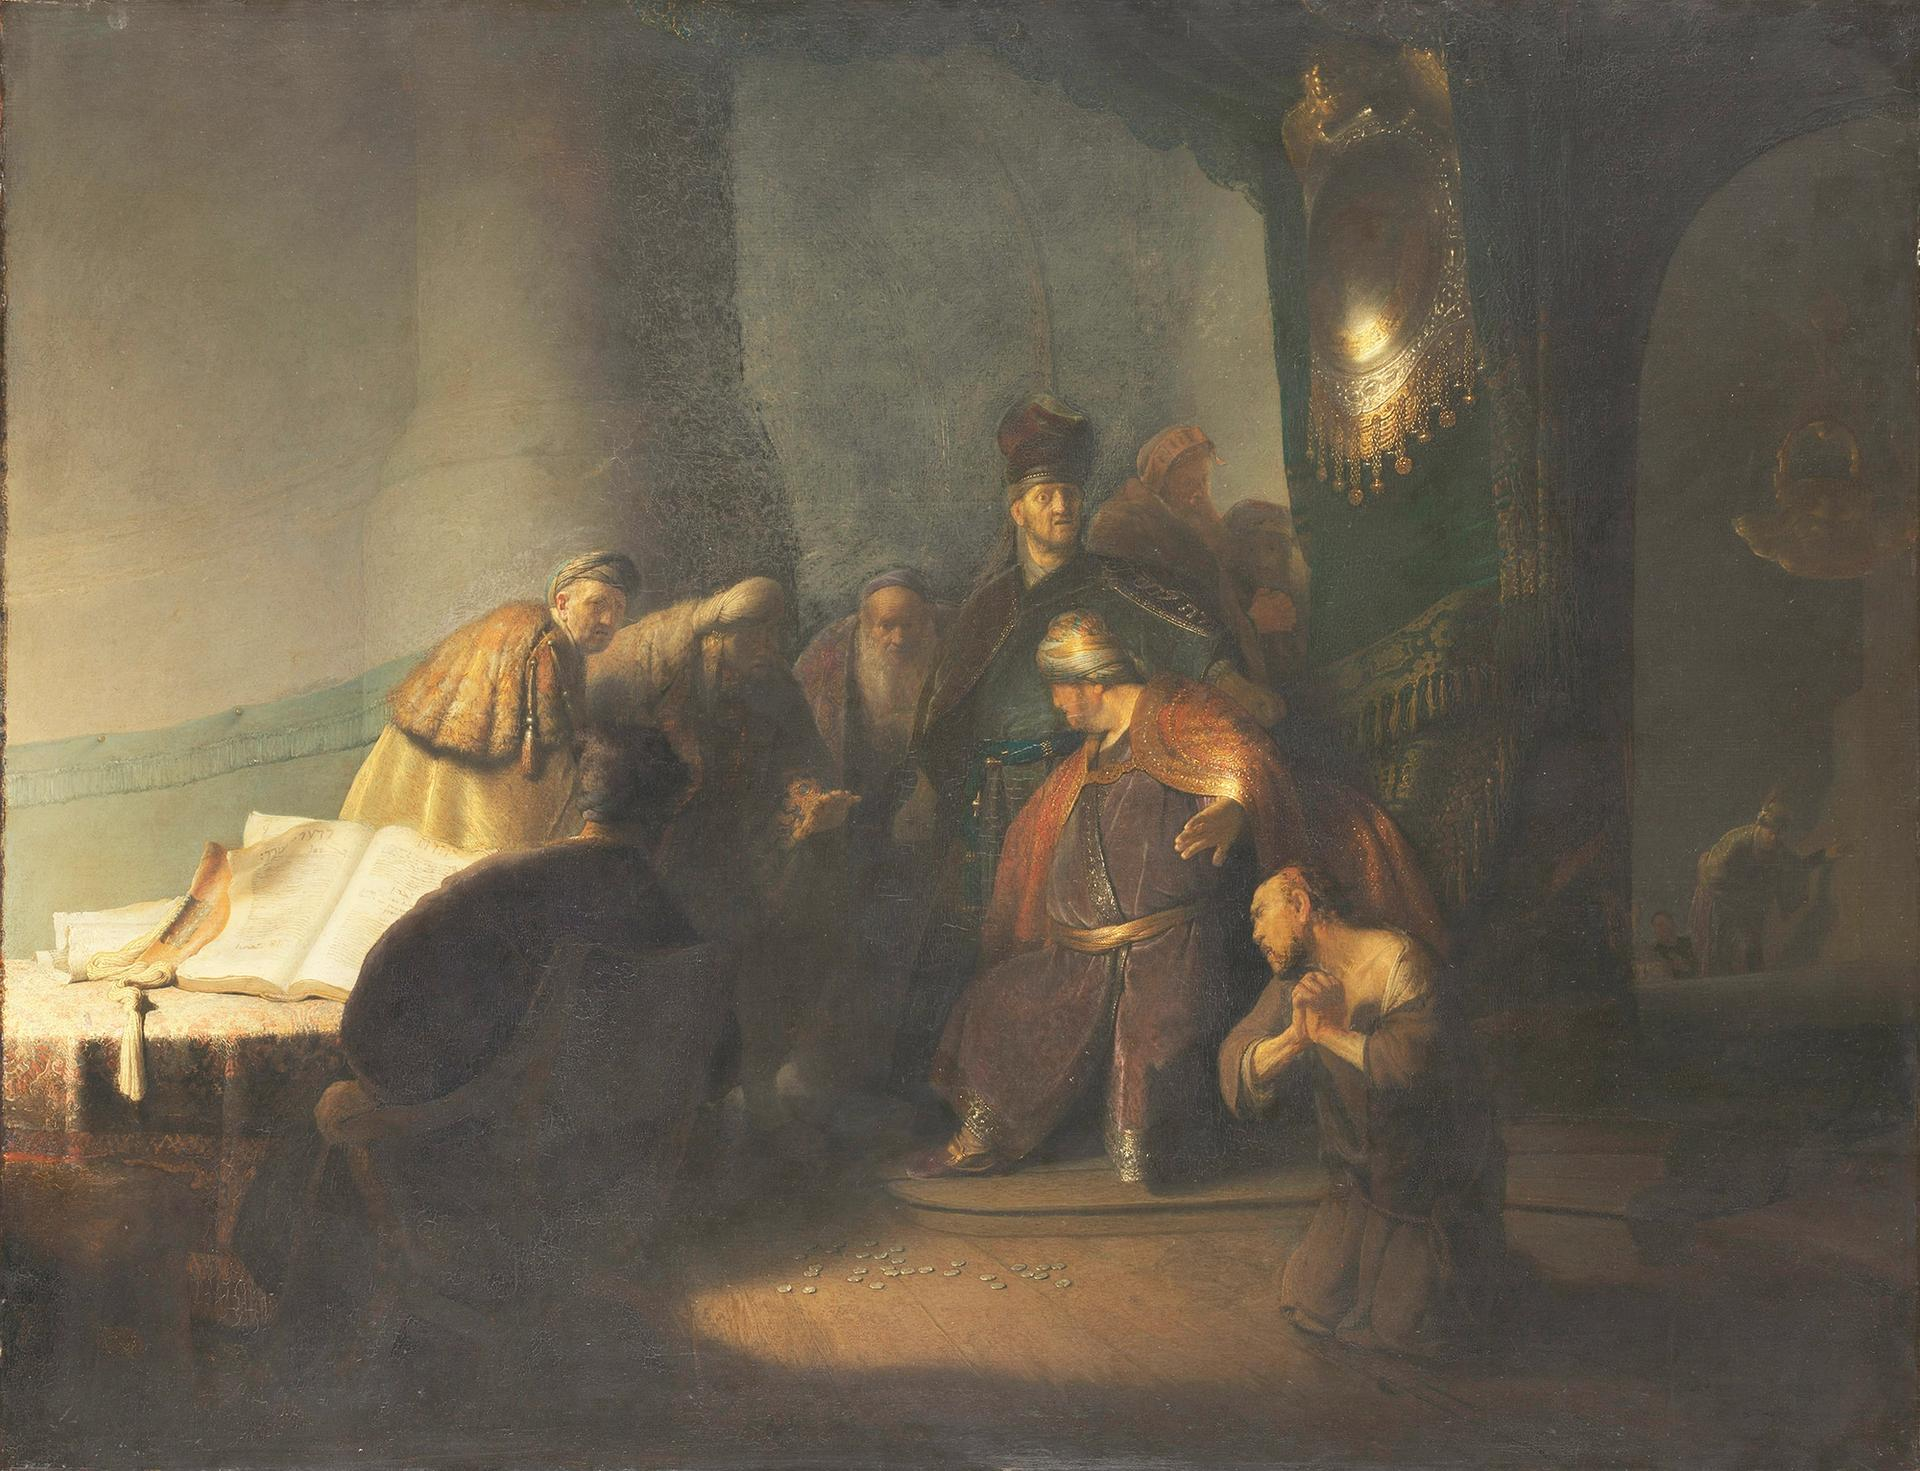 Rembrandt van Rijn's Judas Returning the Thirty Pieces of Silver (1629) © Private Collection. Photography courtesy of the National Gallery